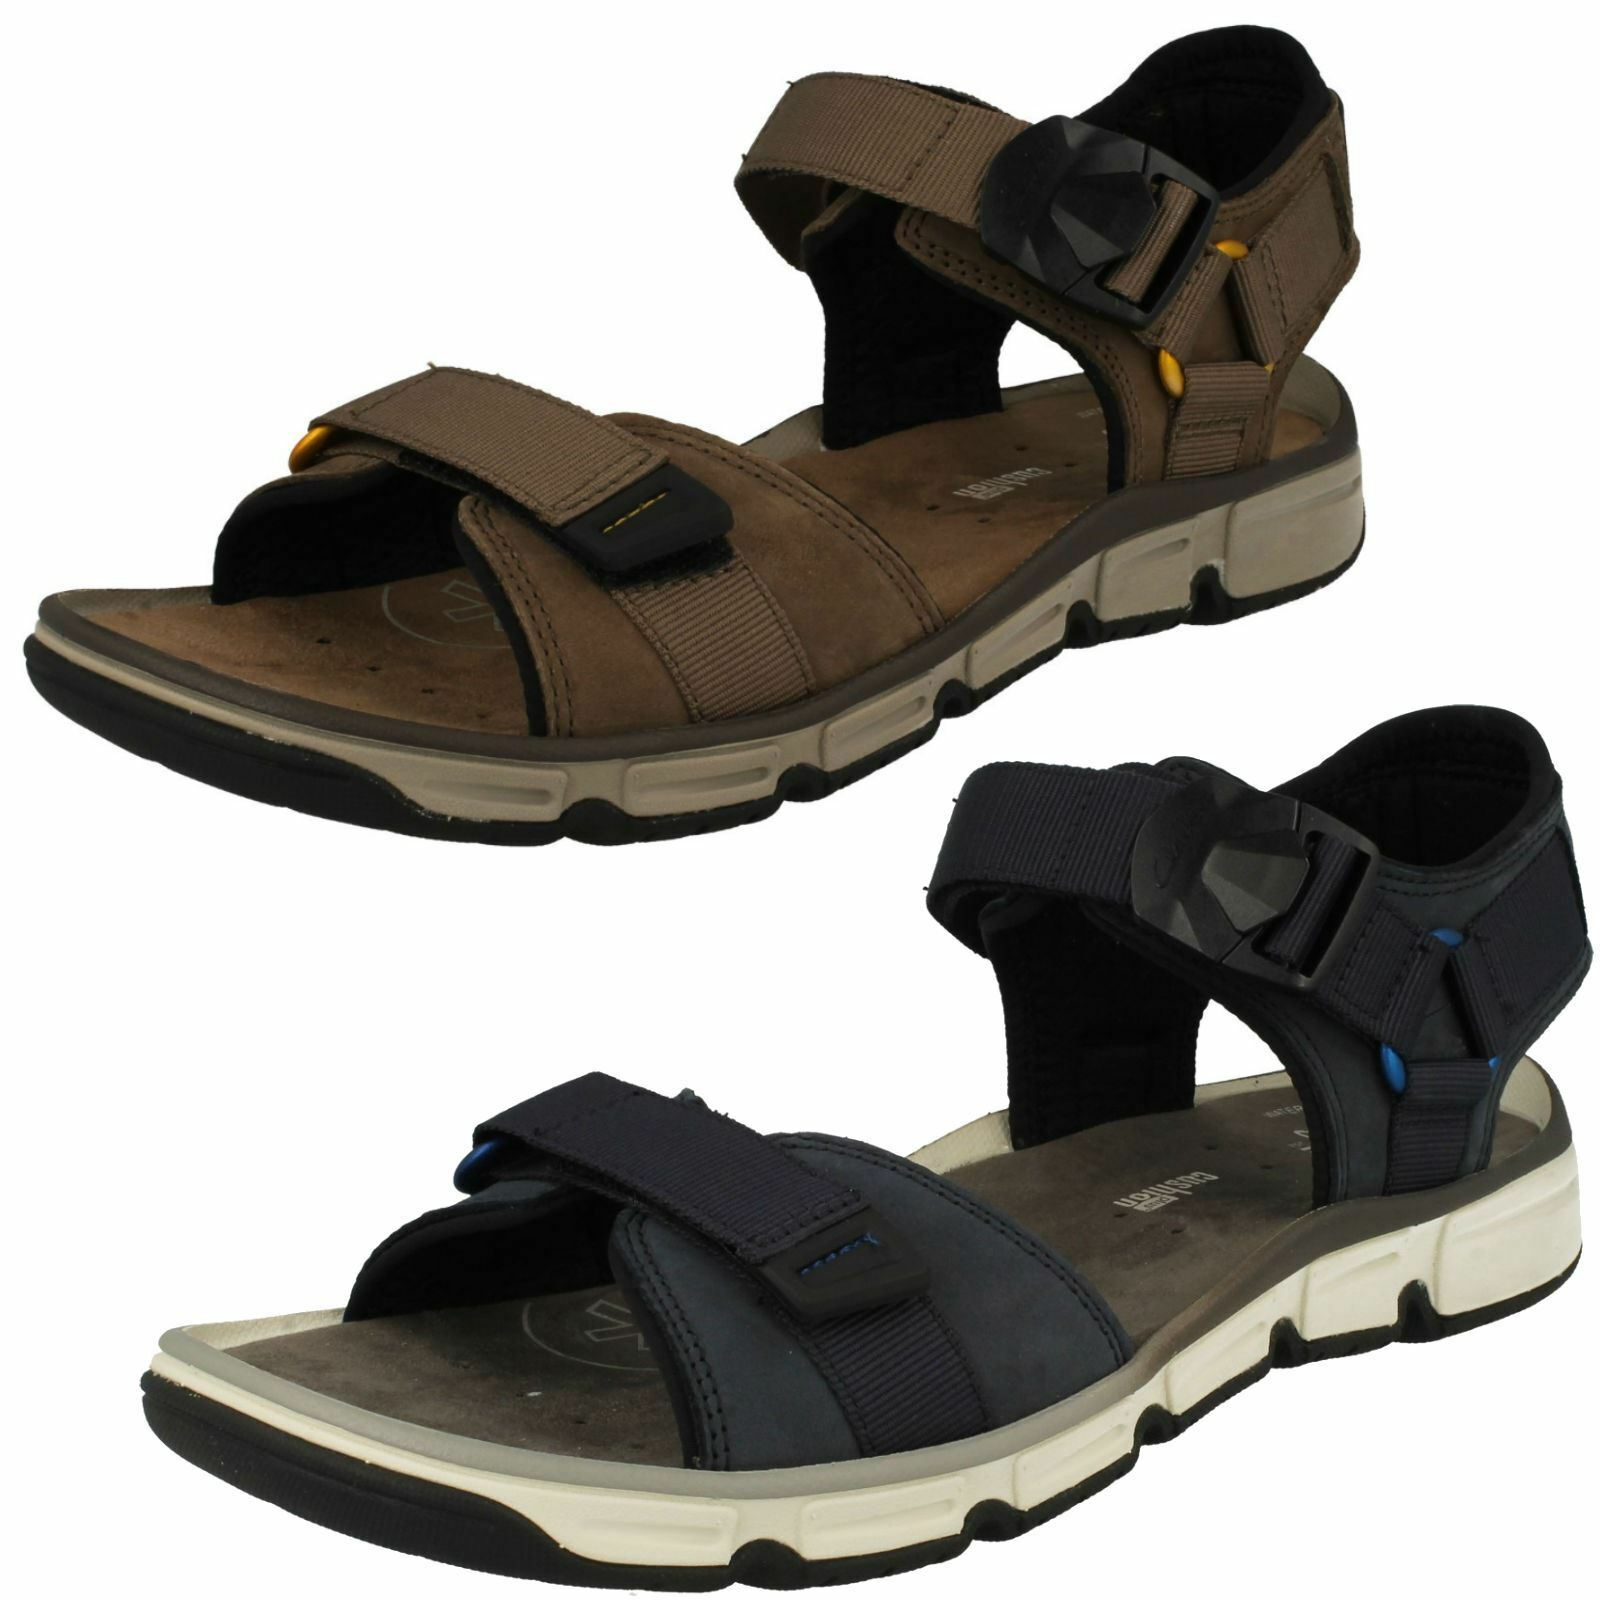 Gentlemen/Ladies Toe Mens Clarks Casual Open Toe Gentlemen/Ladies Summer Sandal Explore Part Clever and practical Highly praised and appreciated by the consumer audience Extreme speed logistics HG808 ce1559